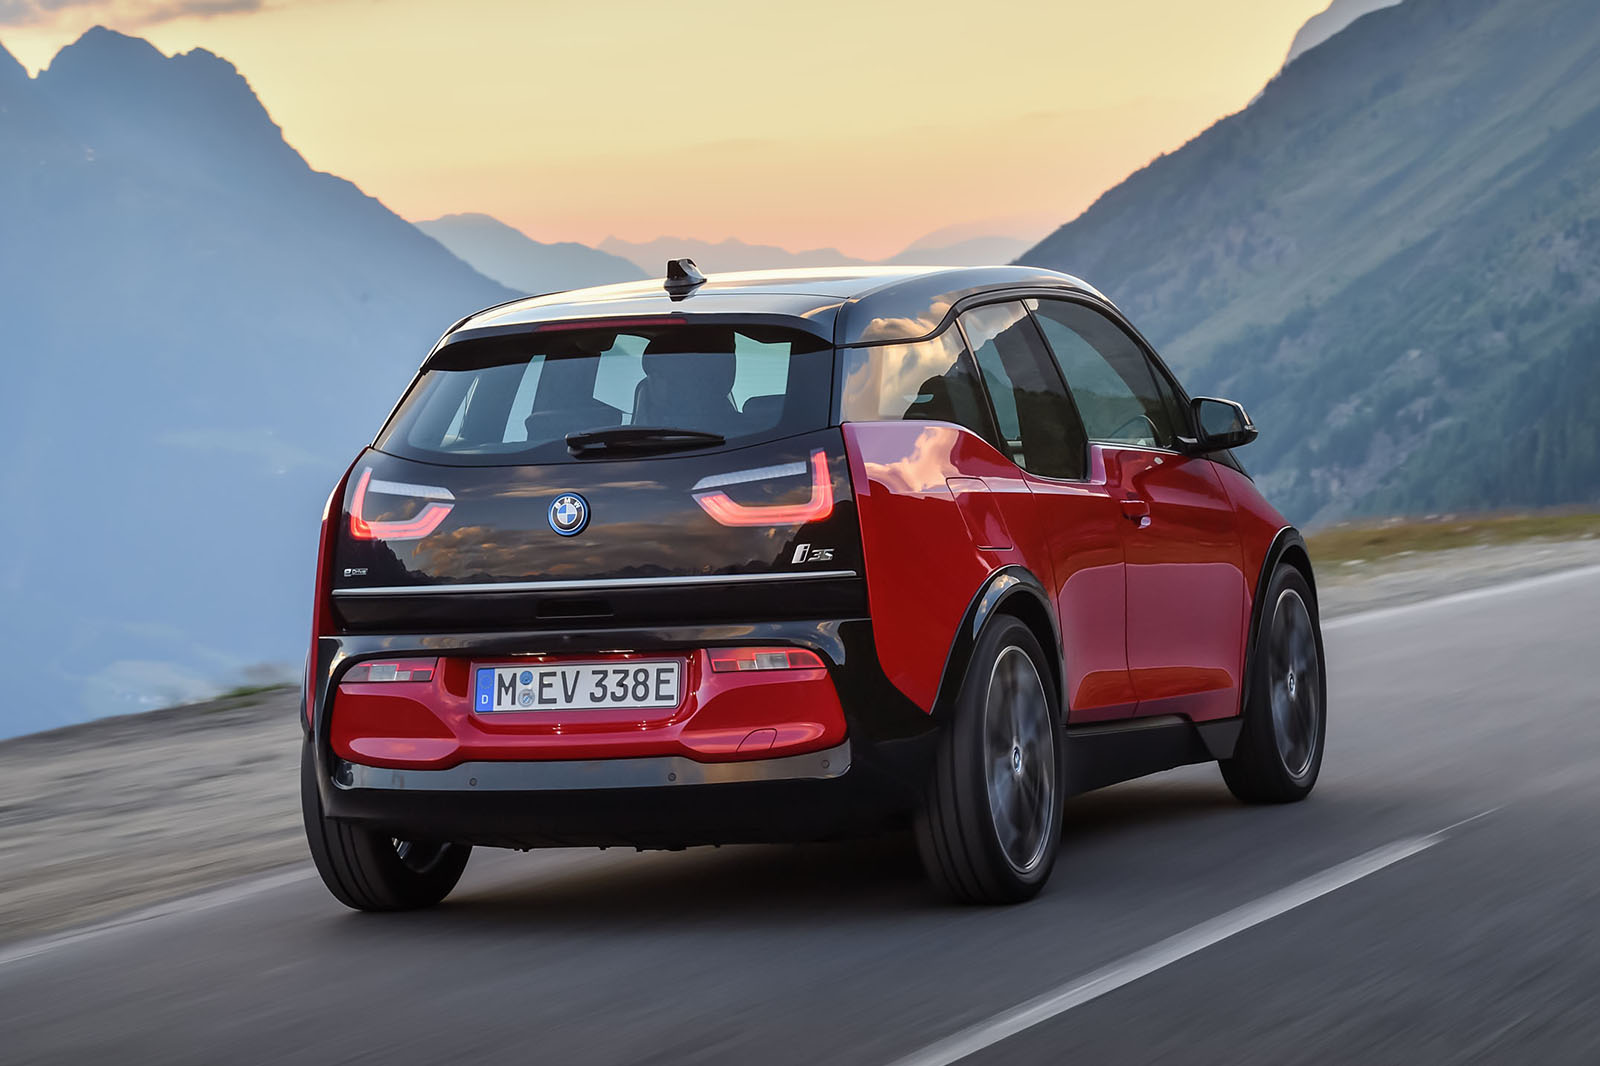 Bmw I3 Facelift Launched With 181bhp I3s Range Topper Autocar Vehicle Electrical System Control Units Location The New And Use Same 94ah Lithium Ion Battery That Was Introduced As A Running Change To Zero Emission In Early 2016